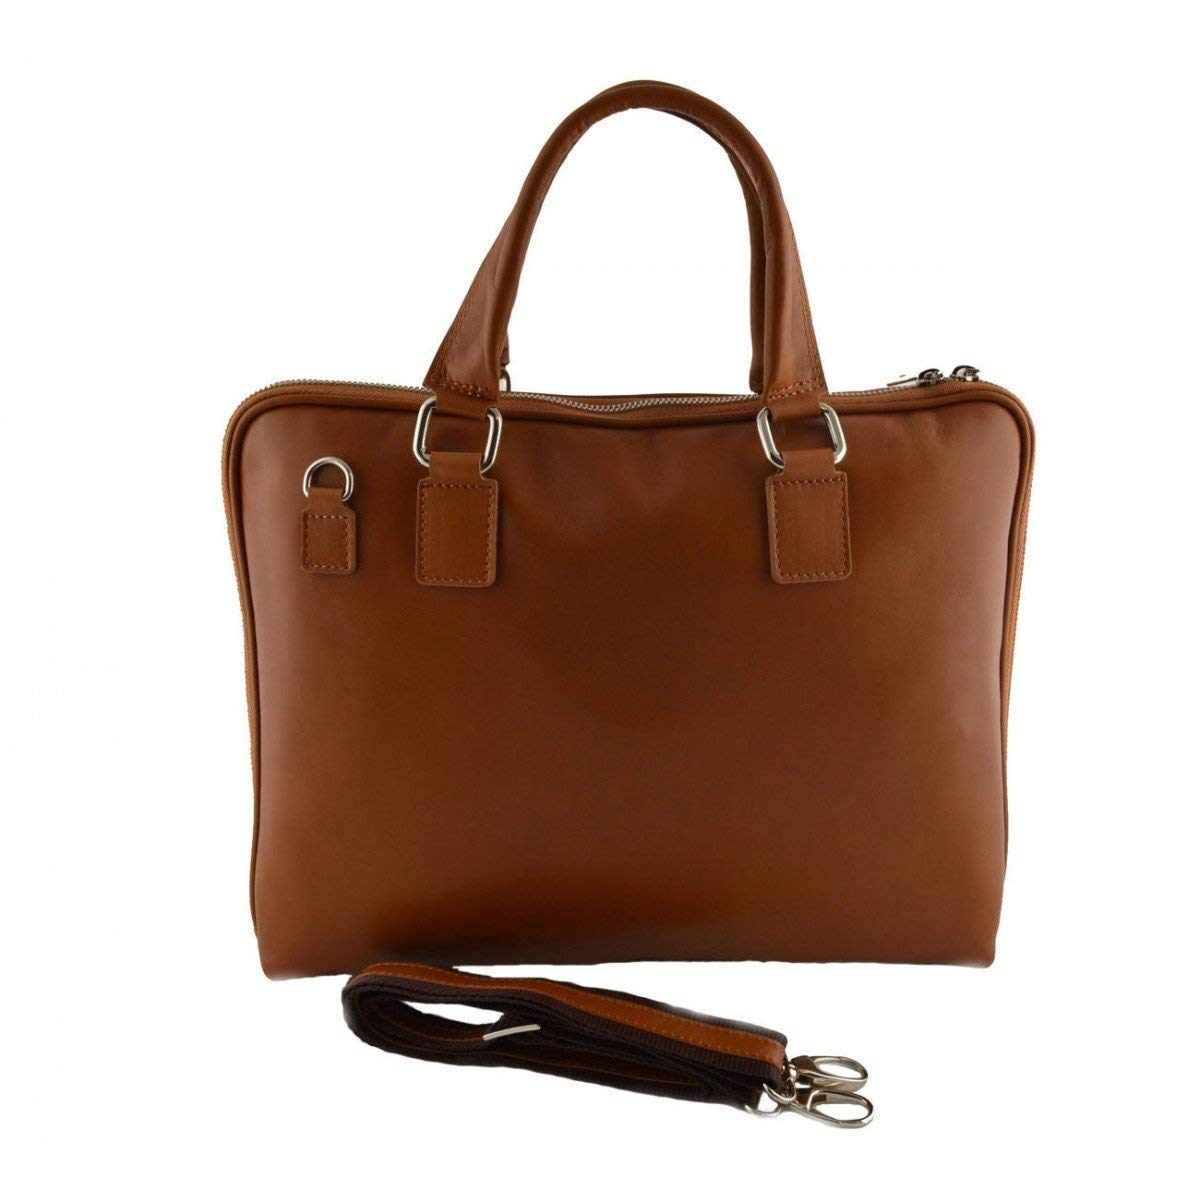 Dream Leather Bags Made in Italy Genuine Leather Genuine Leather Woman Briefcase Color Cognac